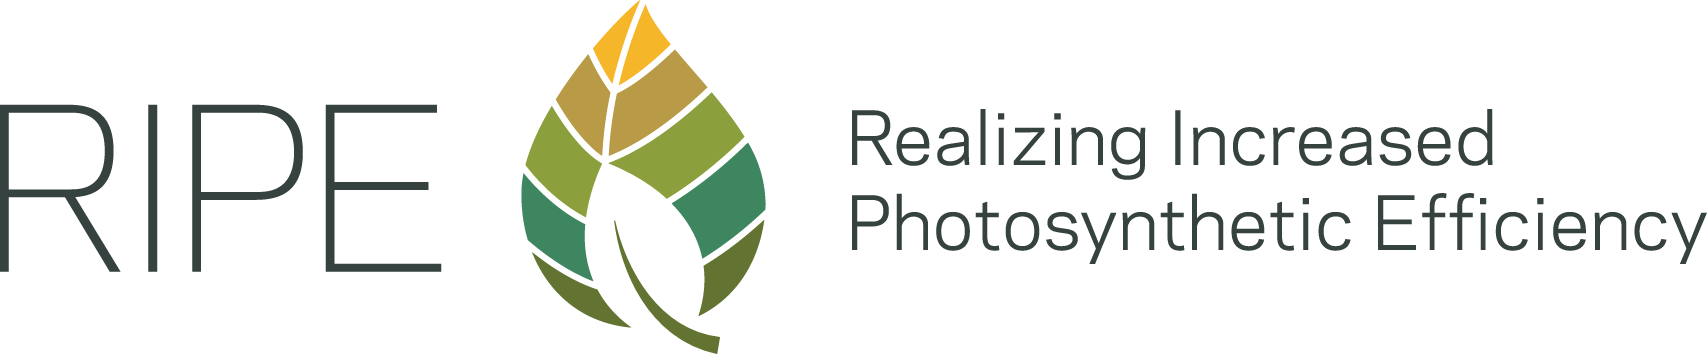 Logo Realizing Increased Photosynthetic Efficiency